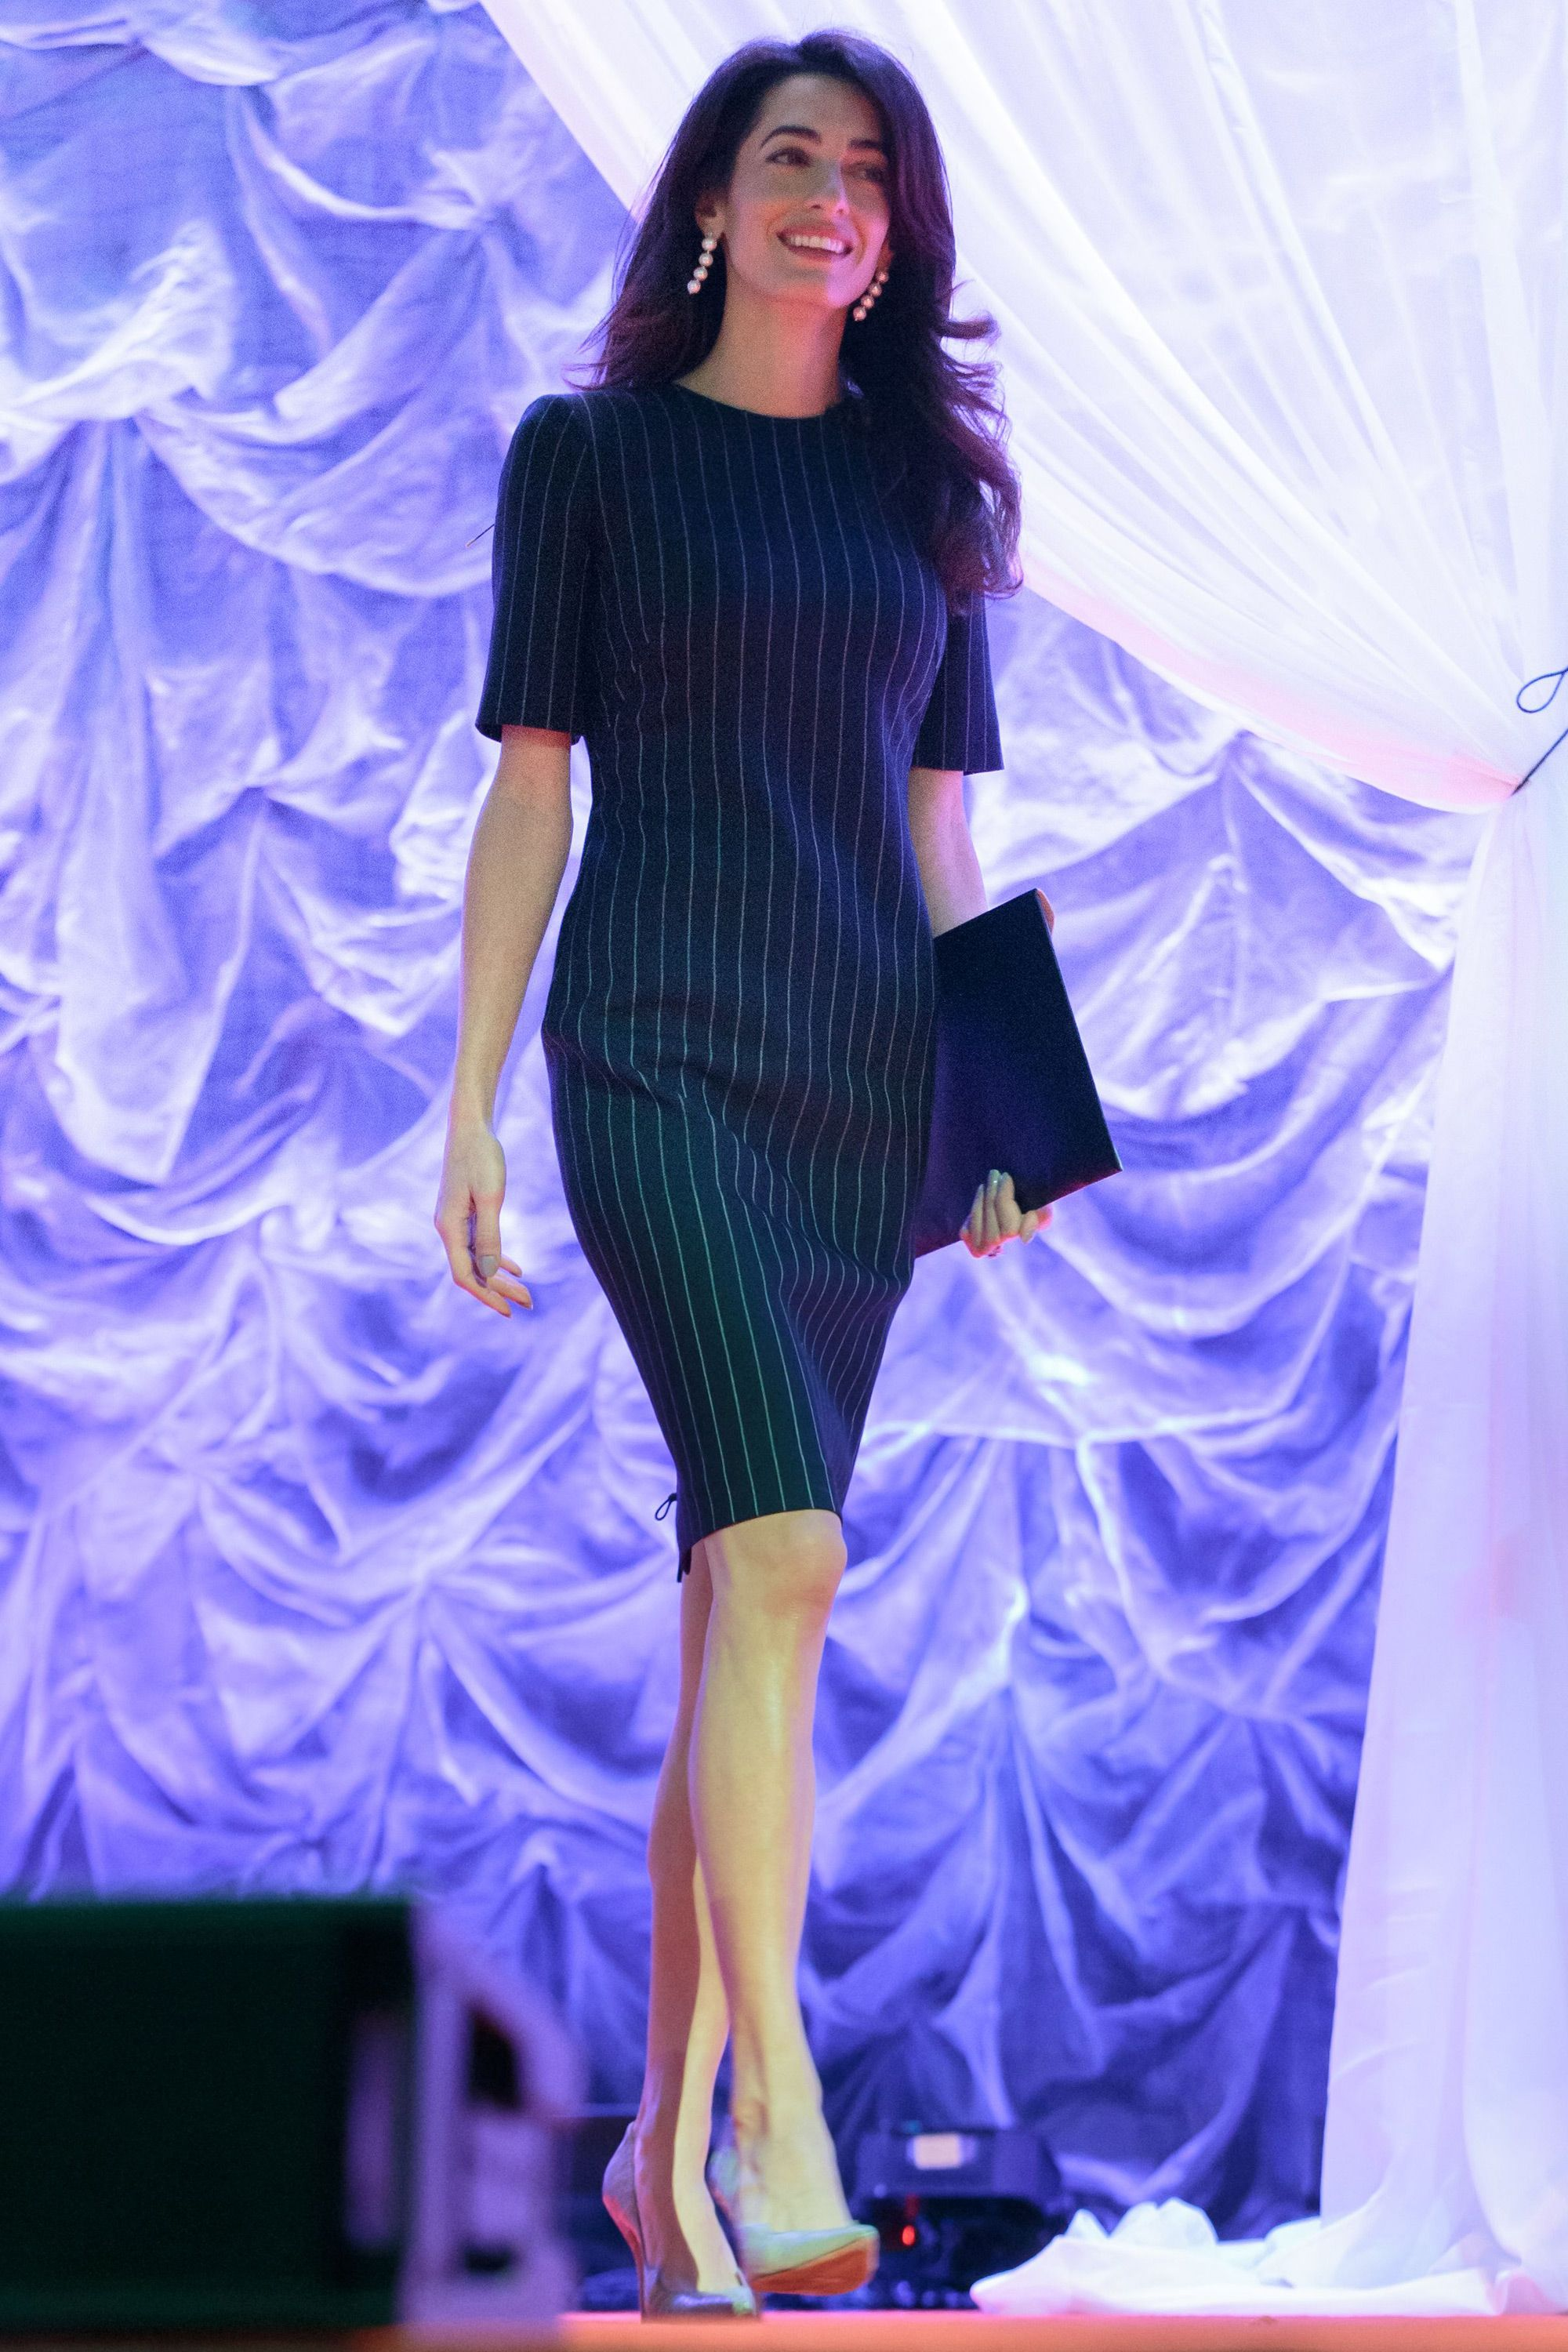 Amal Clooney's Best Looks - Pictures of Amal Clooney's Top